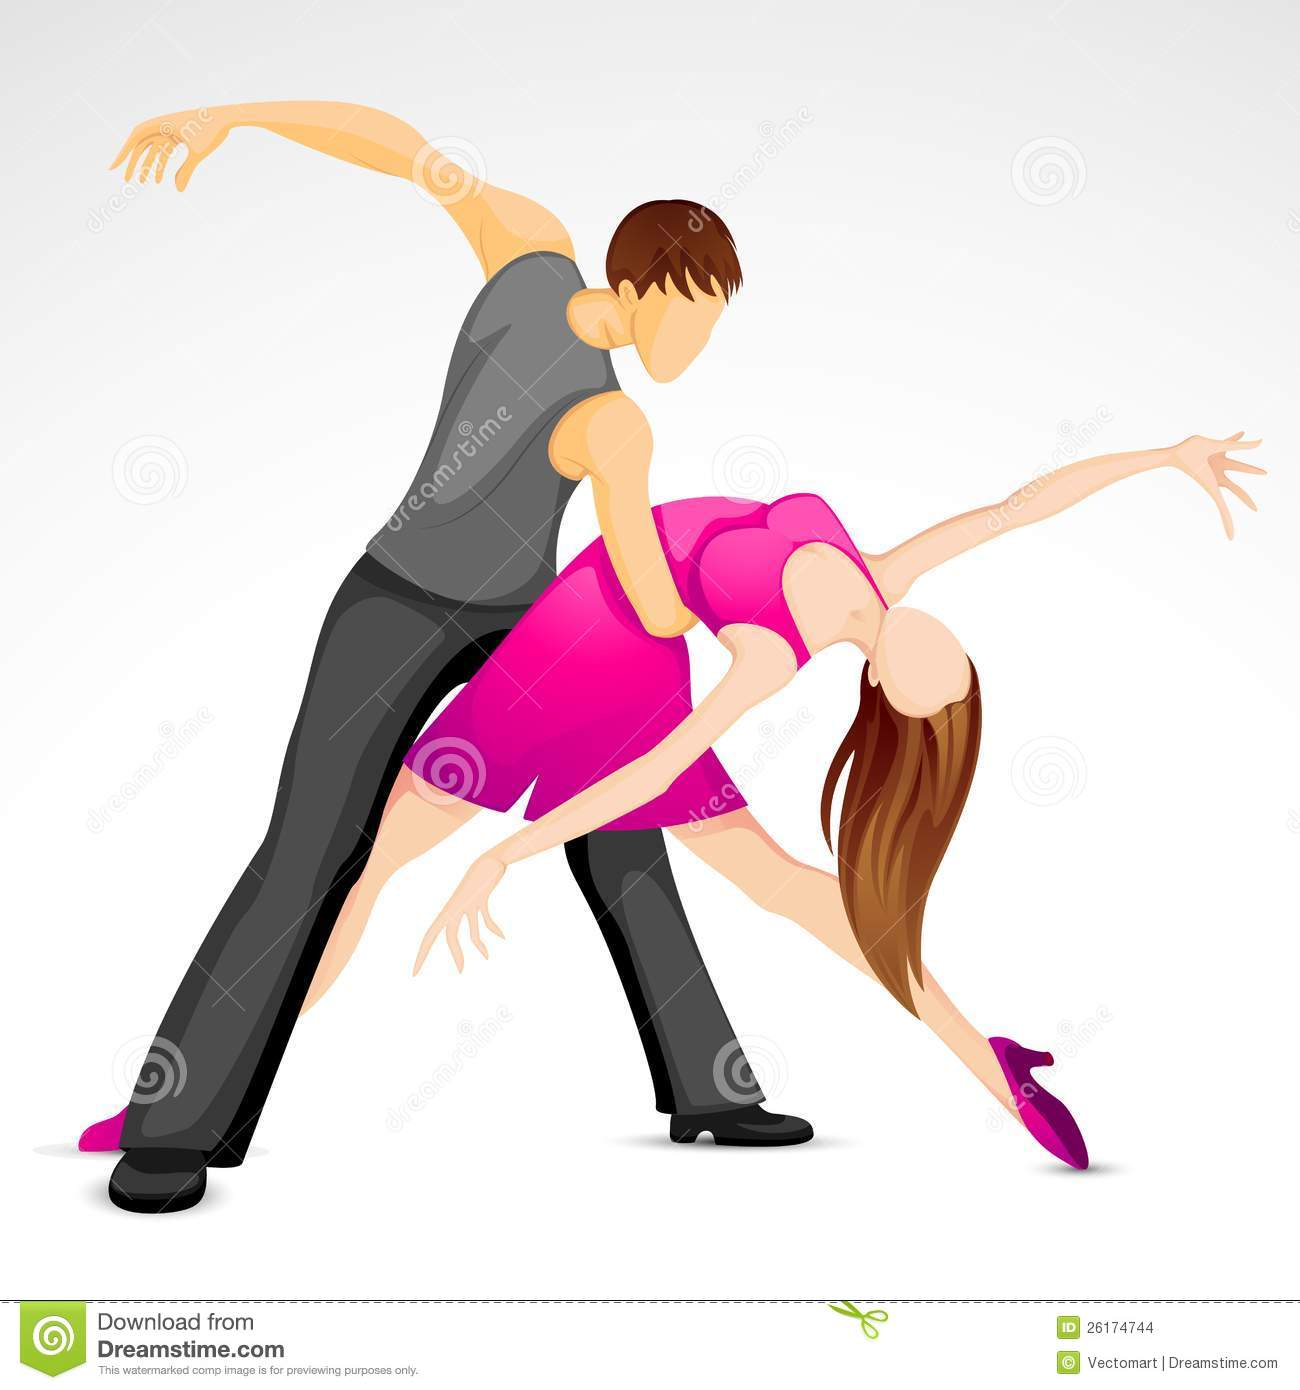 More similar stock images of ` Dancing Couple `